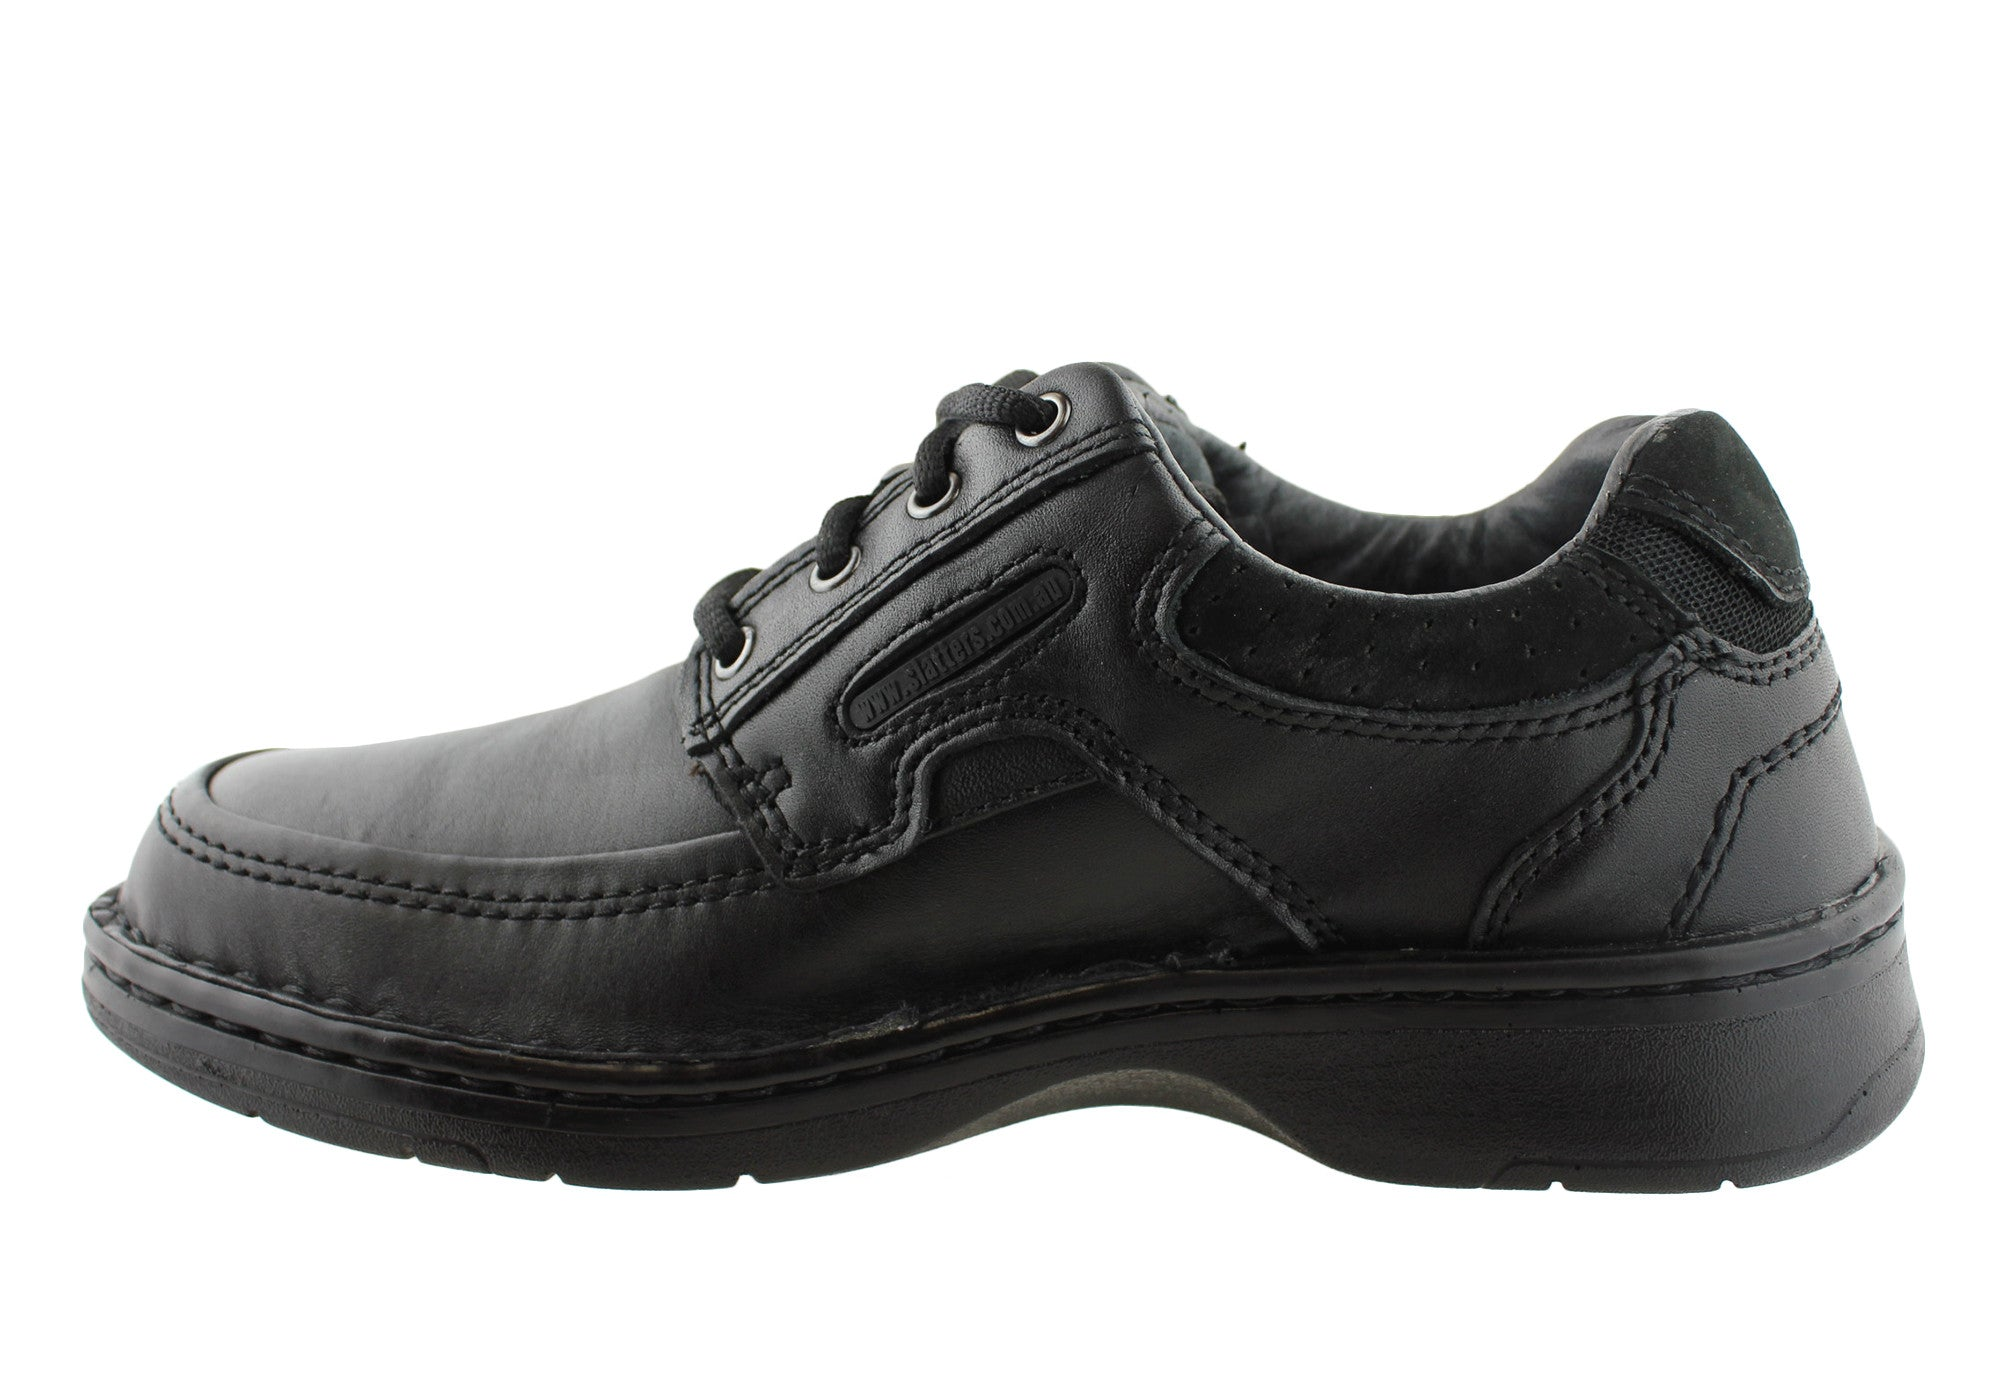 Slatters Chronic Mens Leather Comfort Lace Up Shoes